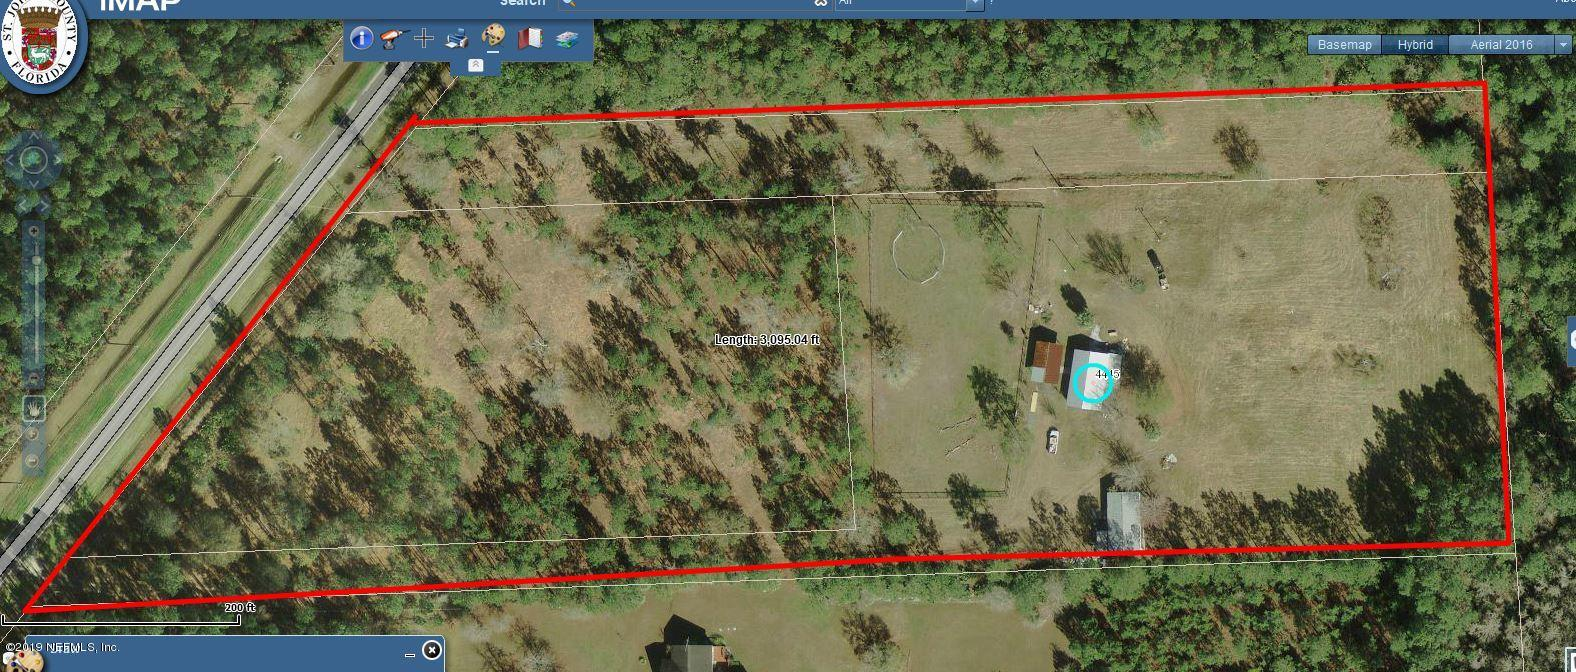 4445 COUNTY ROAD 210, ST JOHNS, FLORIDA 32259, 3 Bedrooms Bedrooms, ,2 BathroomsBathrooms,Residential,For sale,COUNTY ROAD 210,1019180